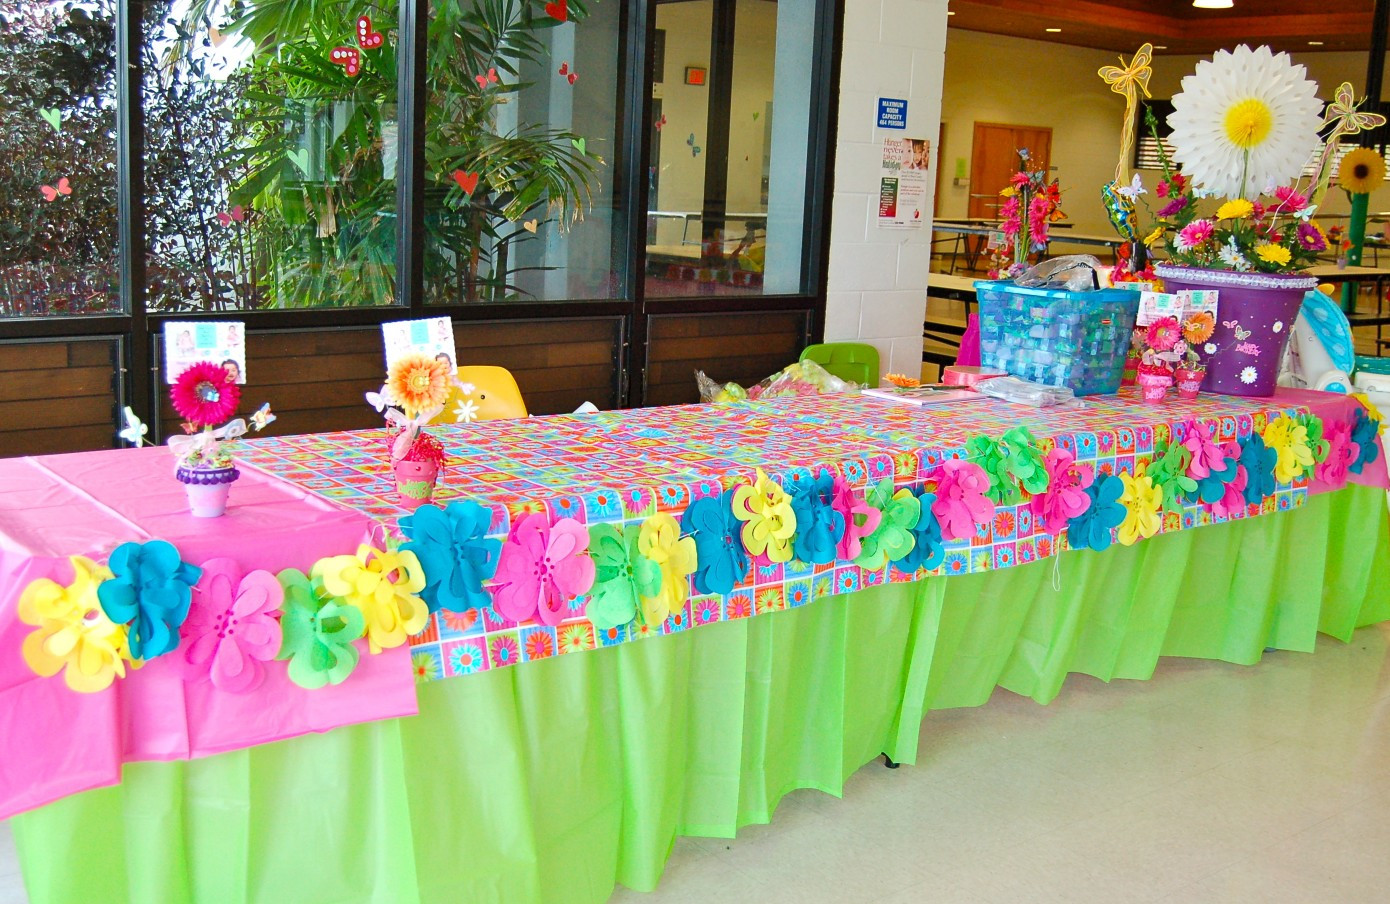 Best ideas about Table Decoration Ideas For Birthday Party . Save or Pin First Birthday Reception Table Decor DSC 1659 1 Now.